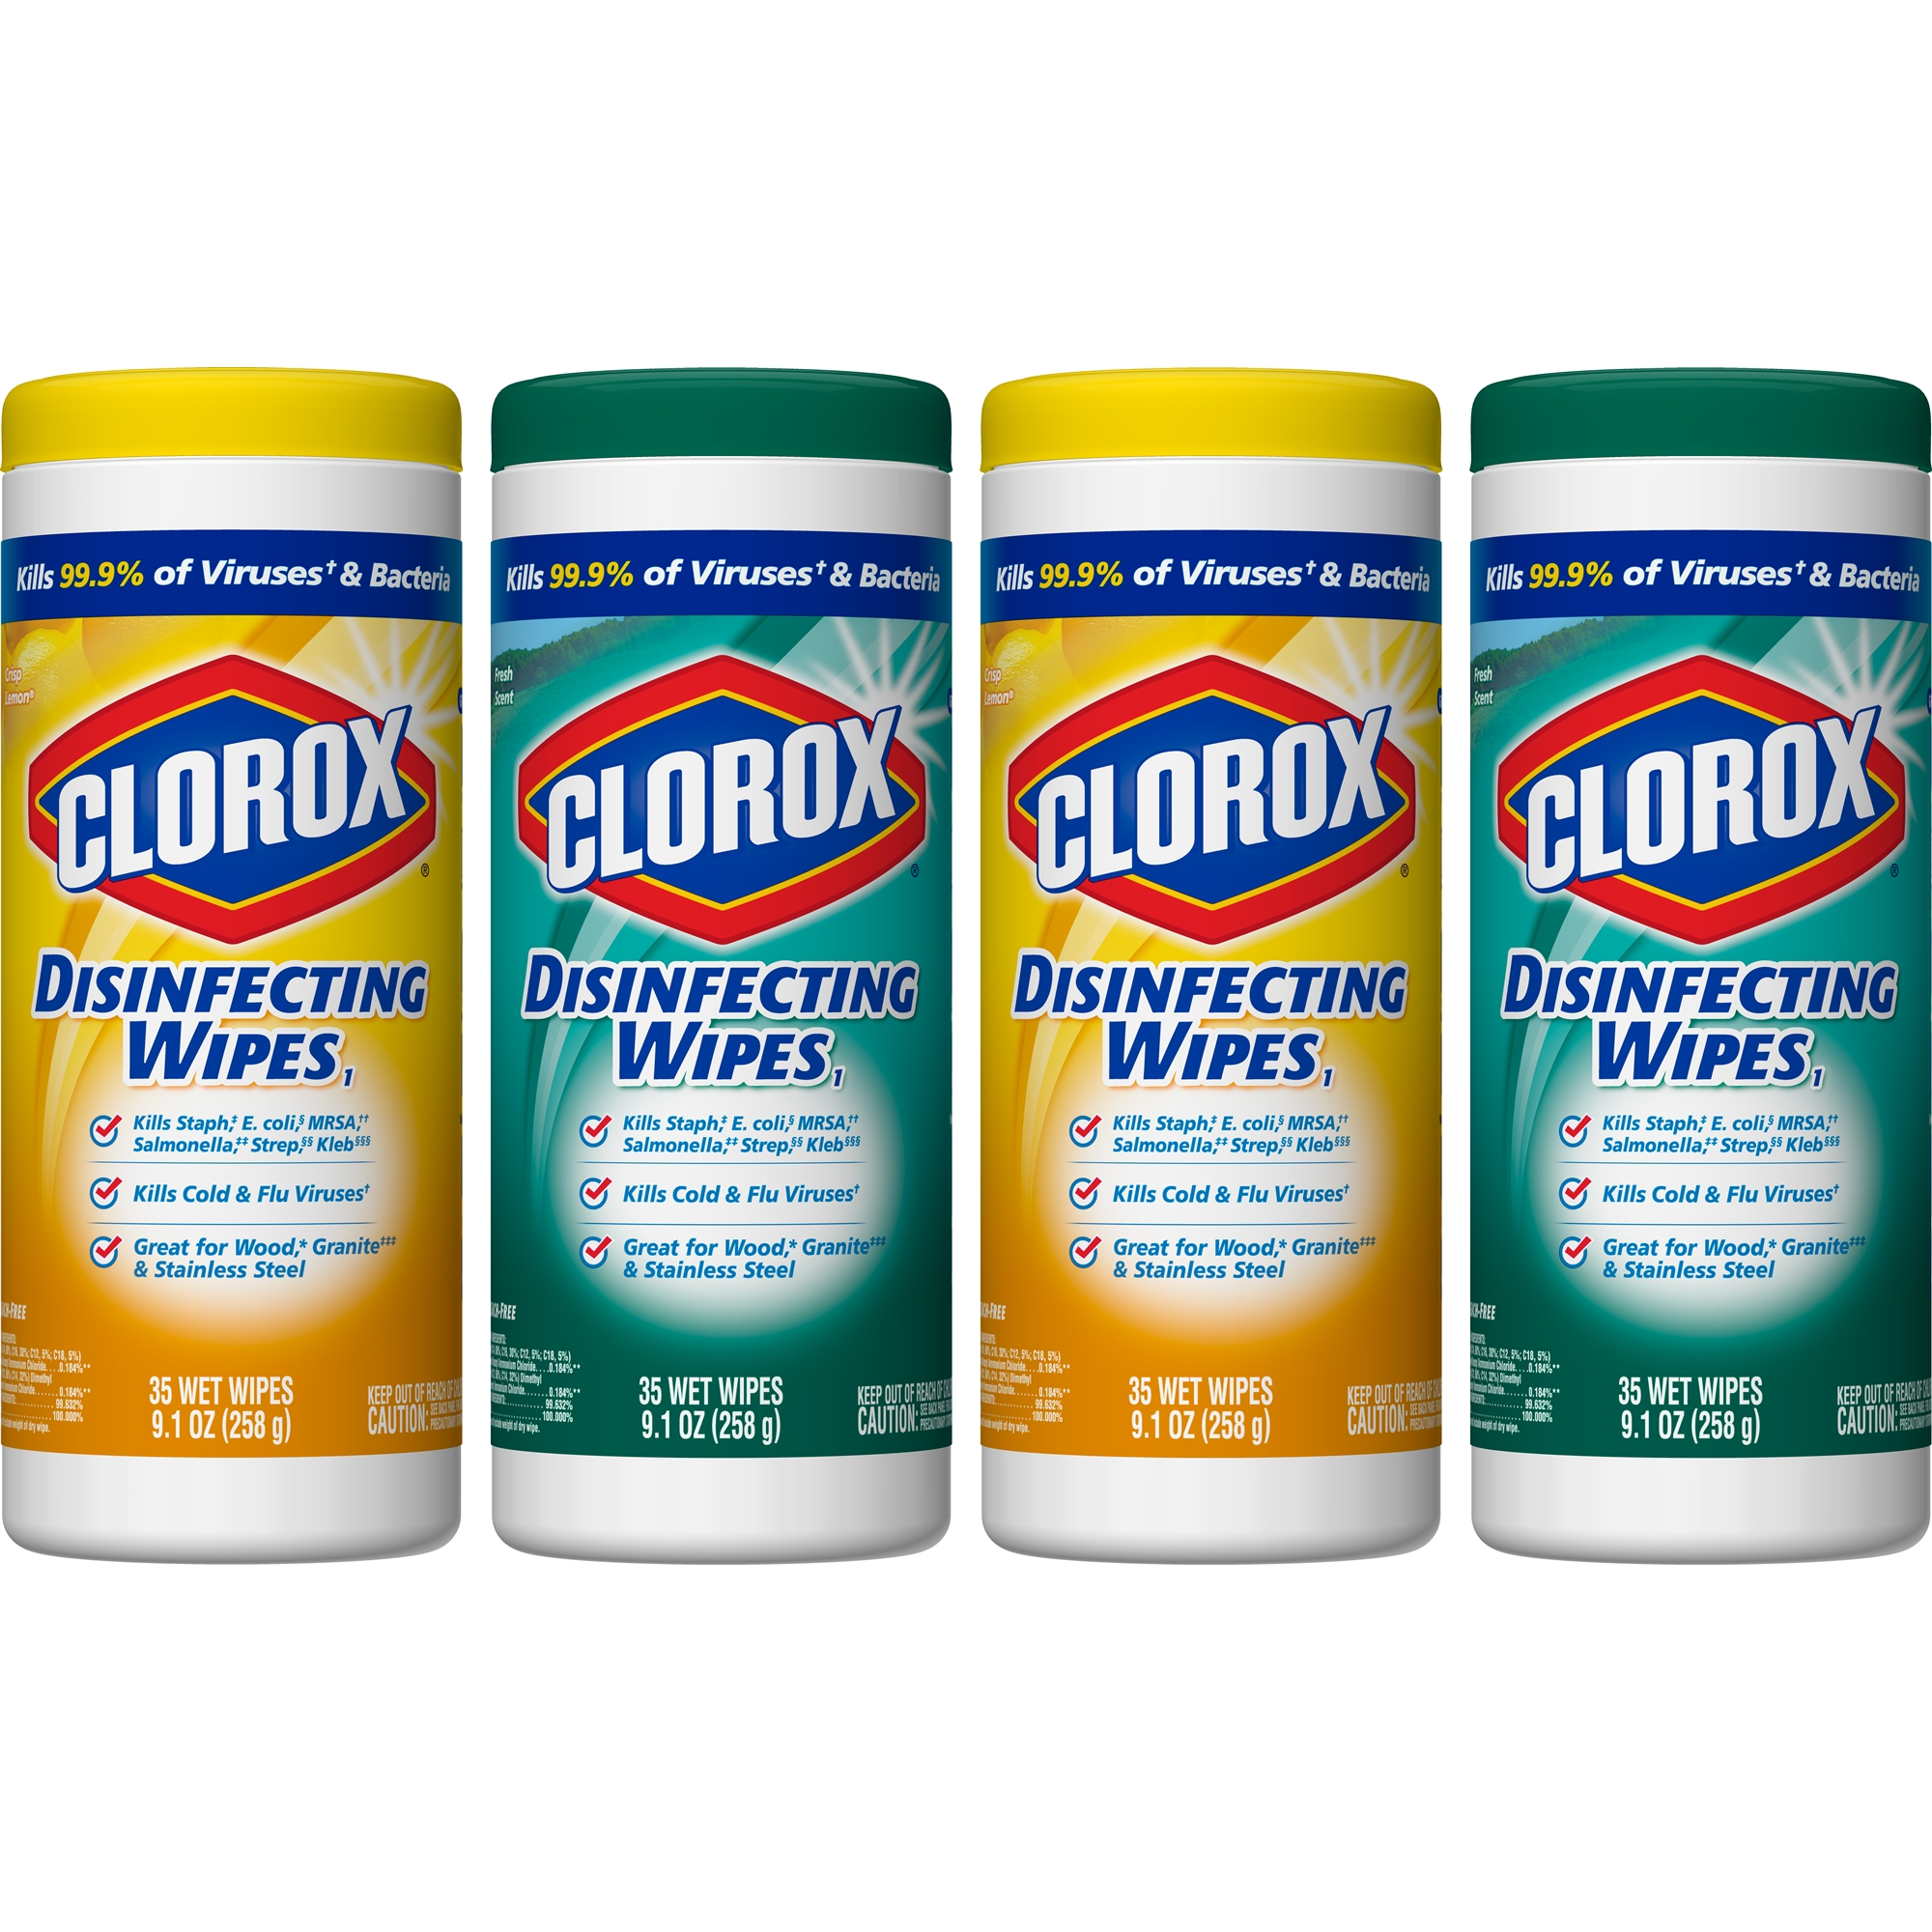 Clorox Disinfecting Wipes (140 Count Value Pack), Bleach Free Cleaning Wipes - 4 Pack - 35 Count Each